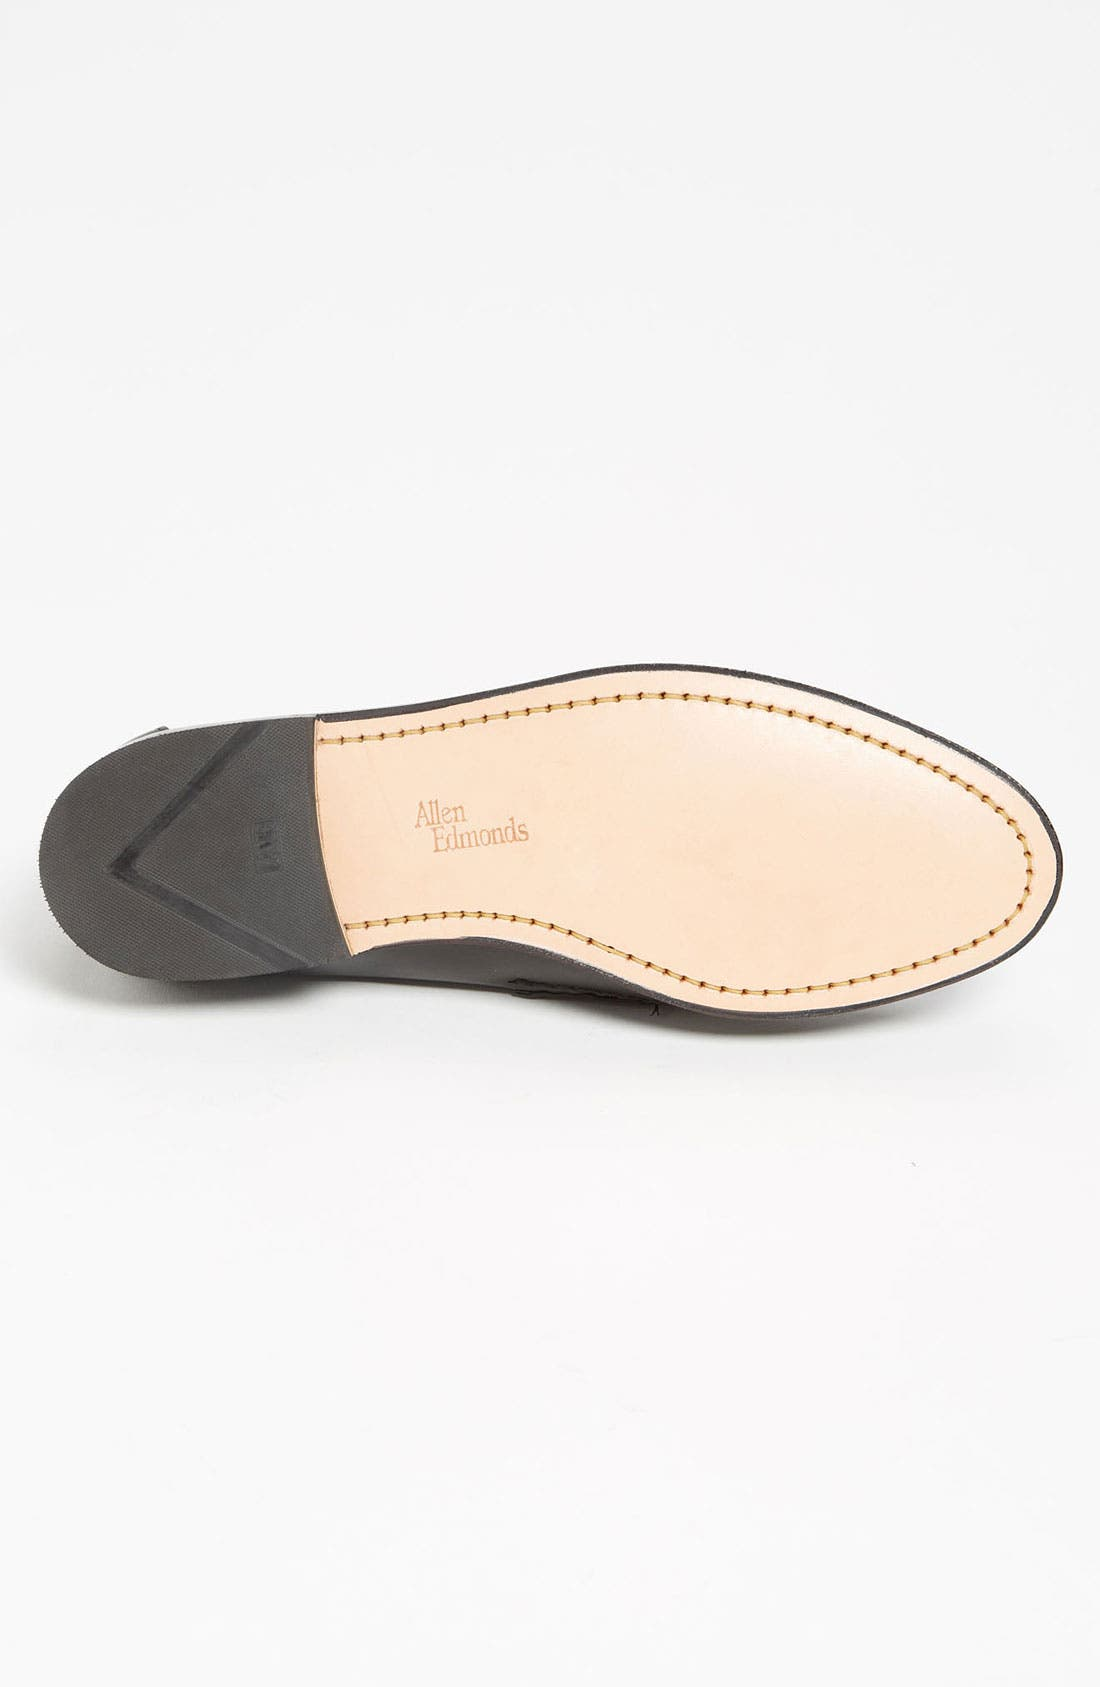 'Maxfield' Loafer,                             Alternate thumbnail 4, color,                             Black